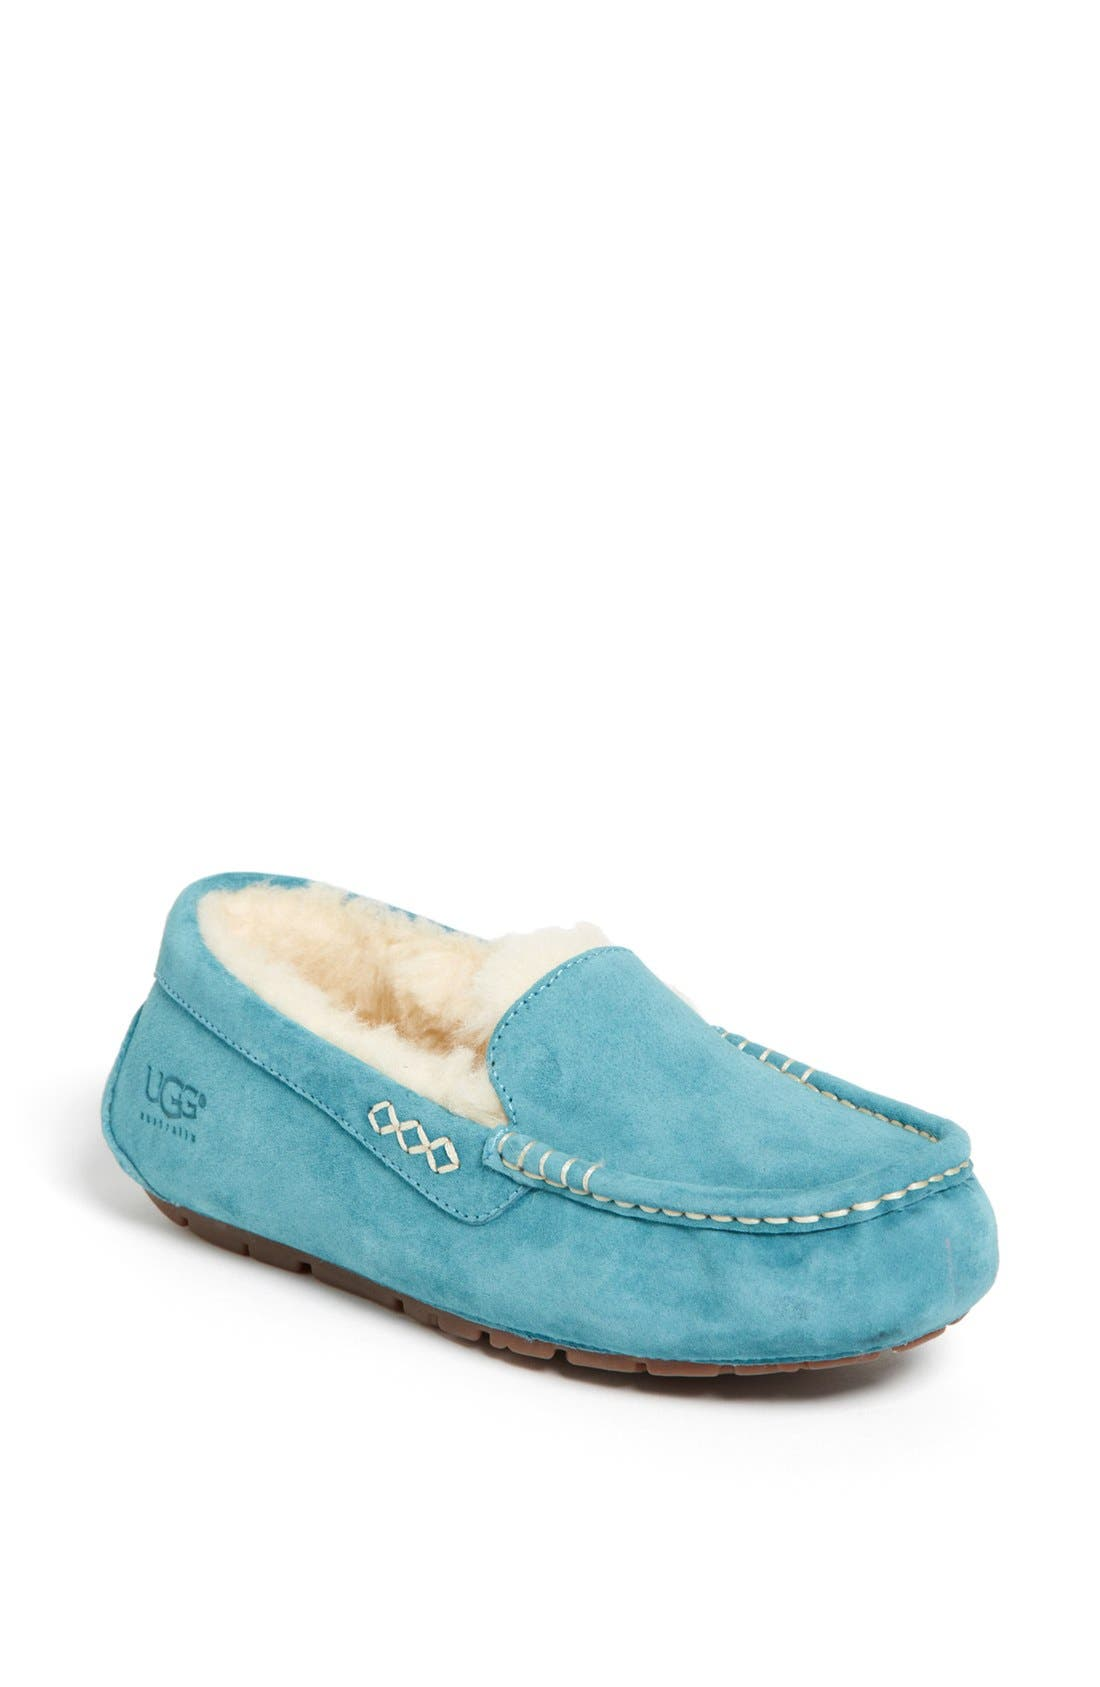 Alternate Image 1 Selected - UGG® 'Ansley' Slipper (Women) (Exclusive Color)